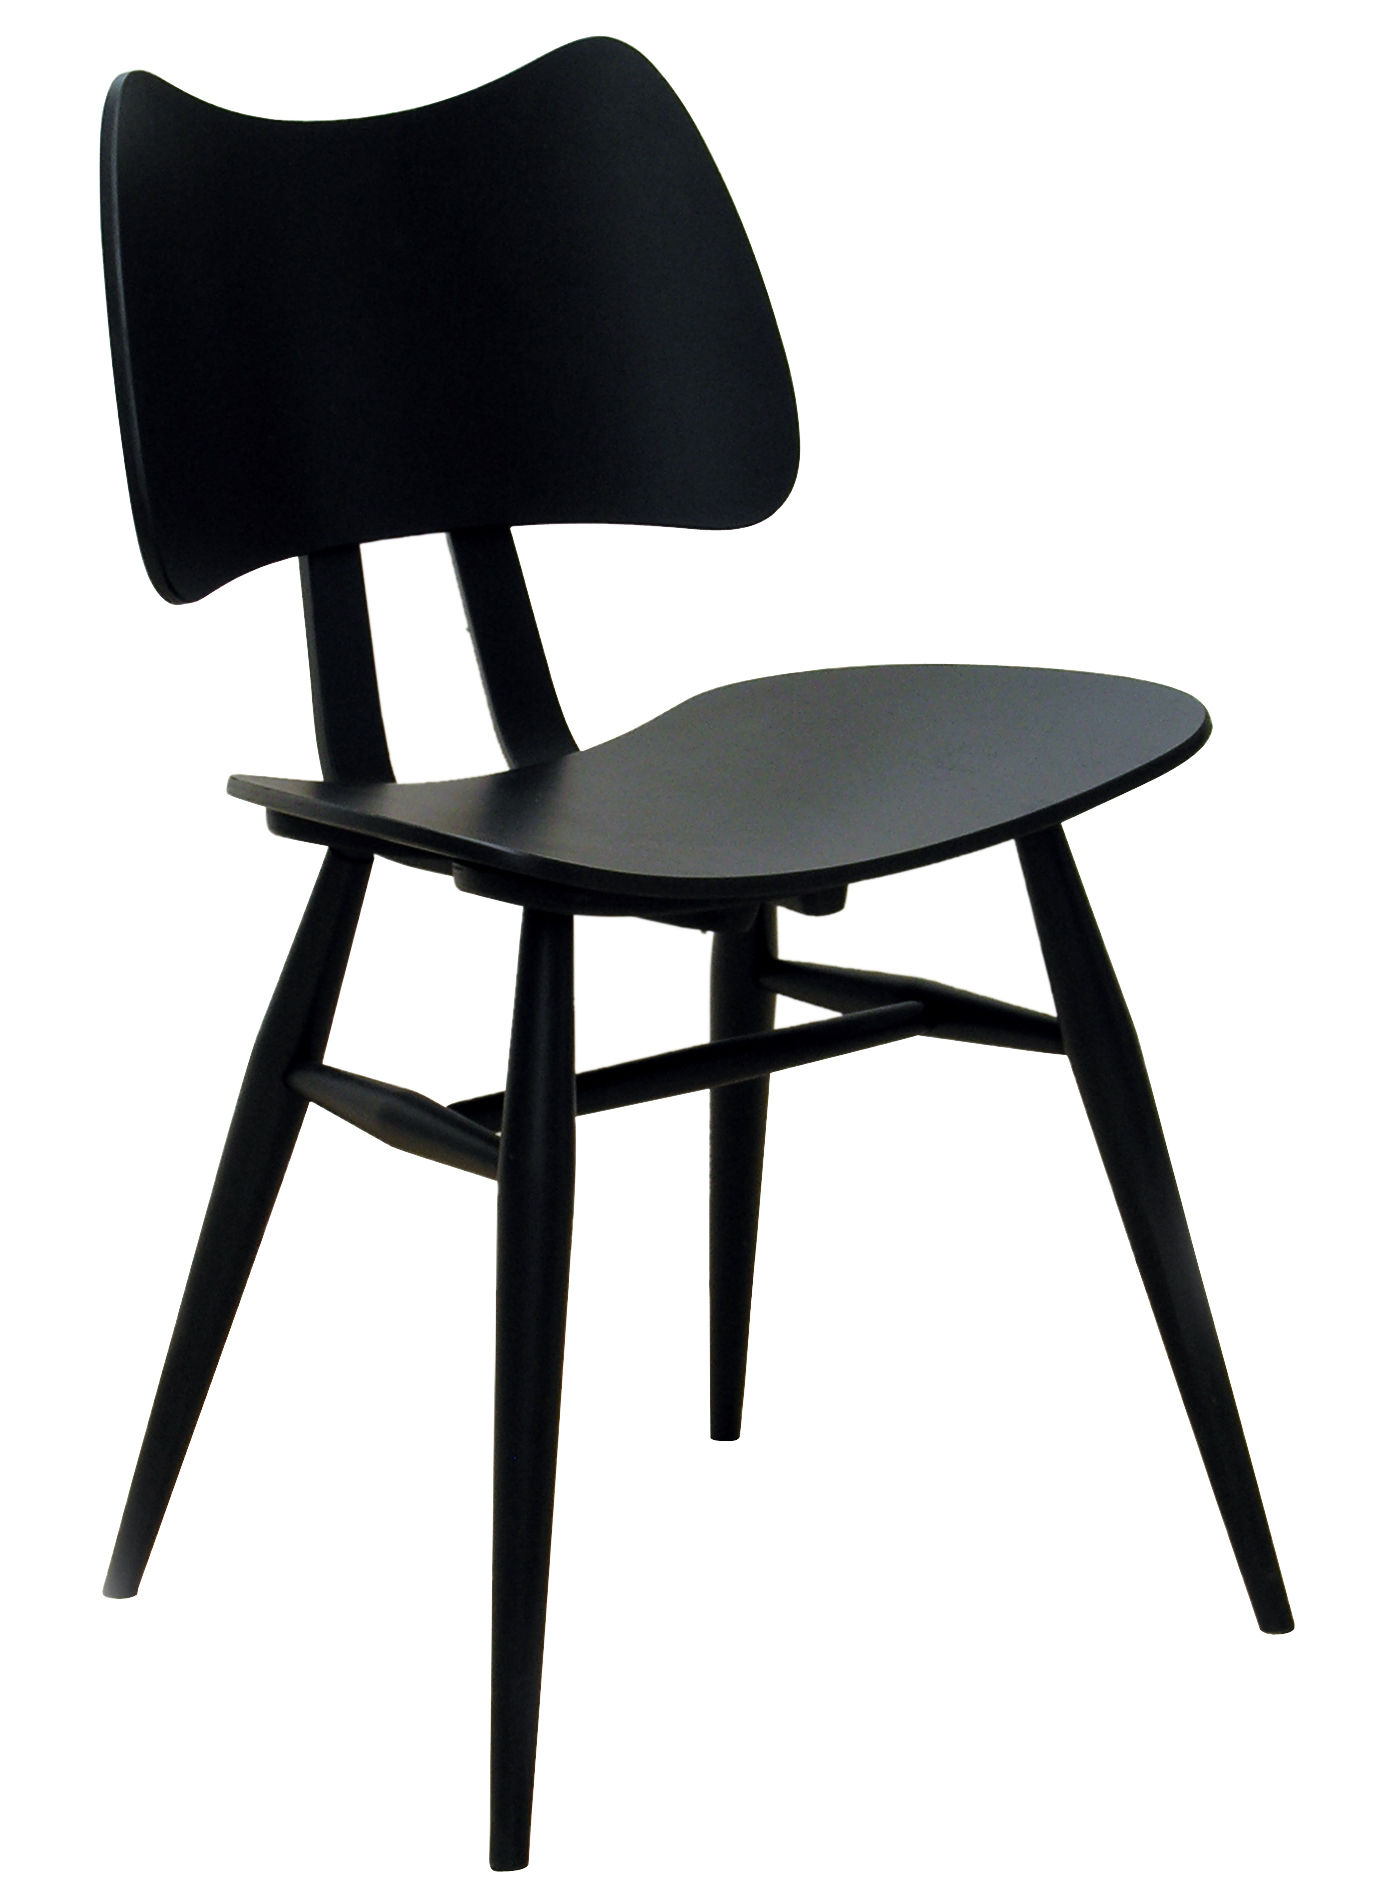 Furniture - Chairs - Butterfly Chair - Wood - Reissue 1958 by Ercol - Black - Contreplaqué de orme, Natural beechwood